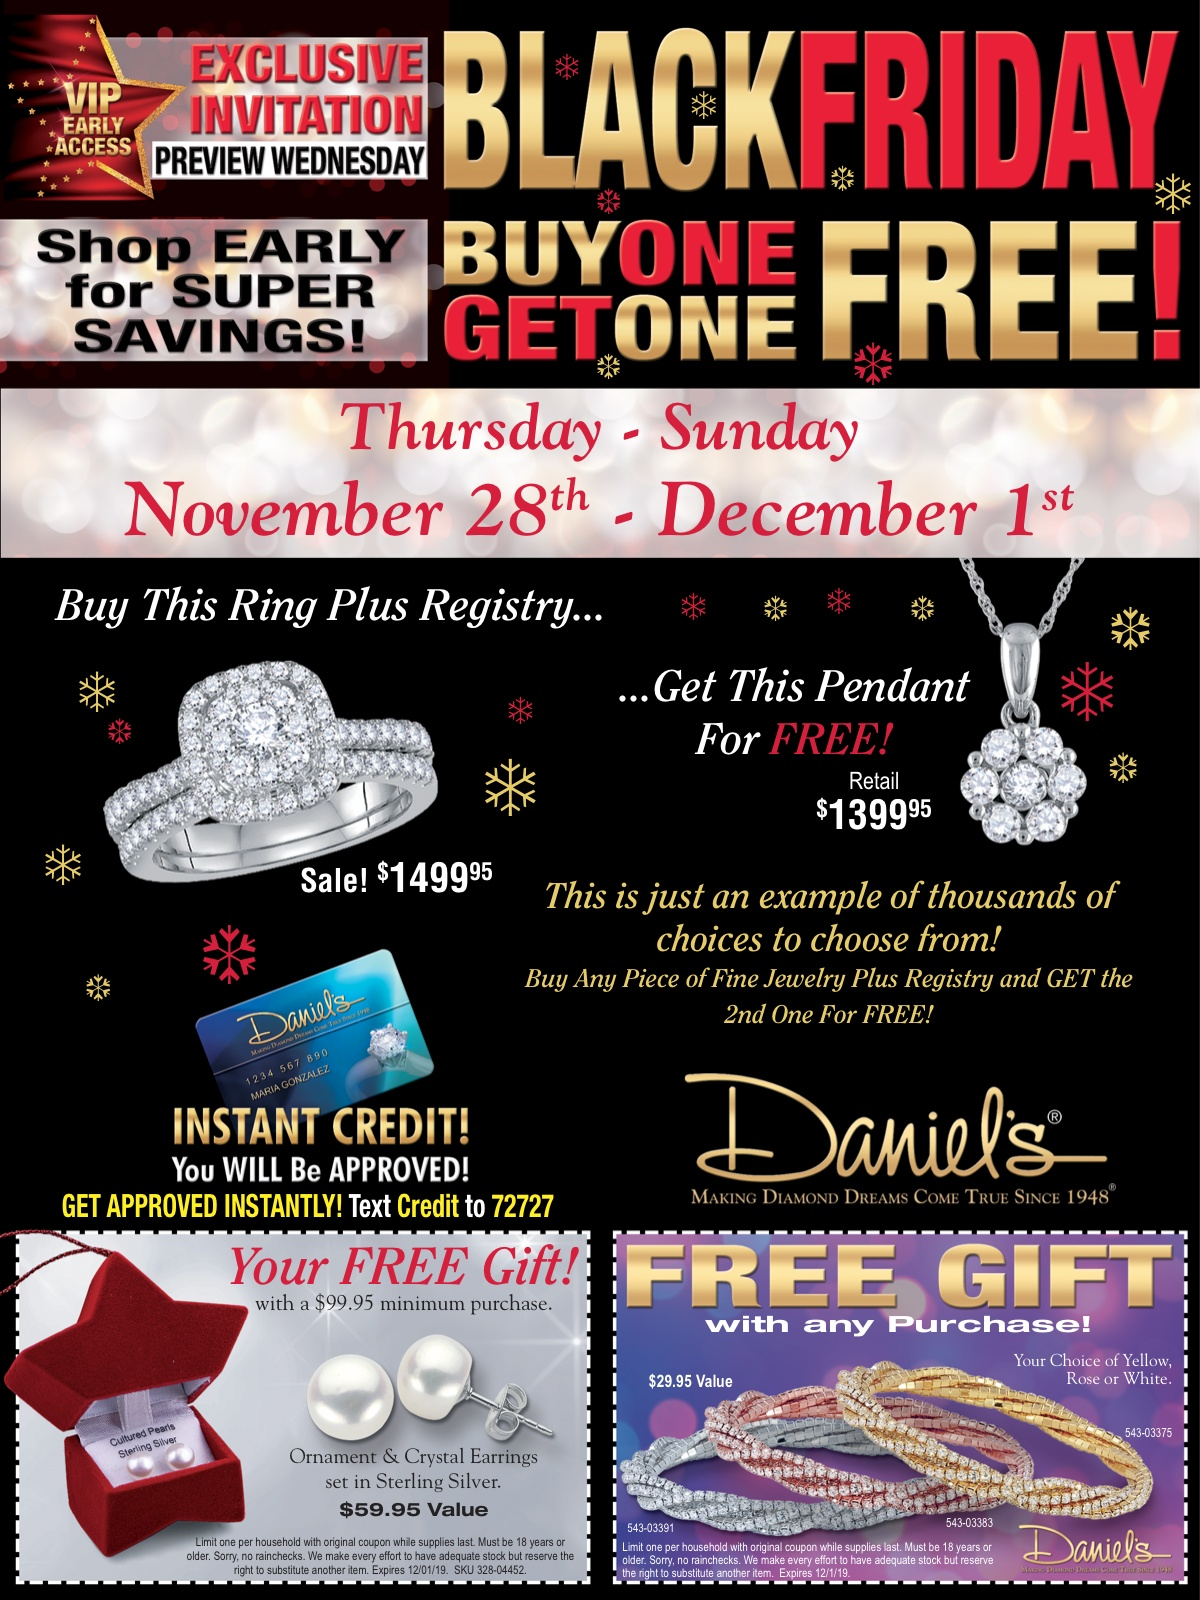 Daniel's Jewelers BLACK FRIDAY BOGO SALE